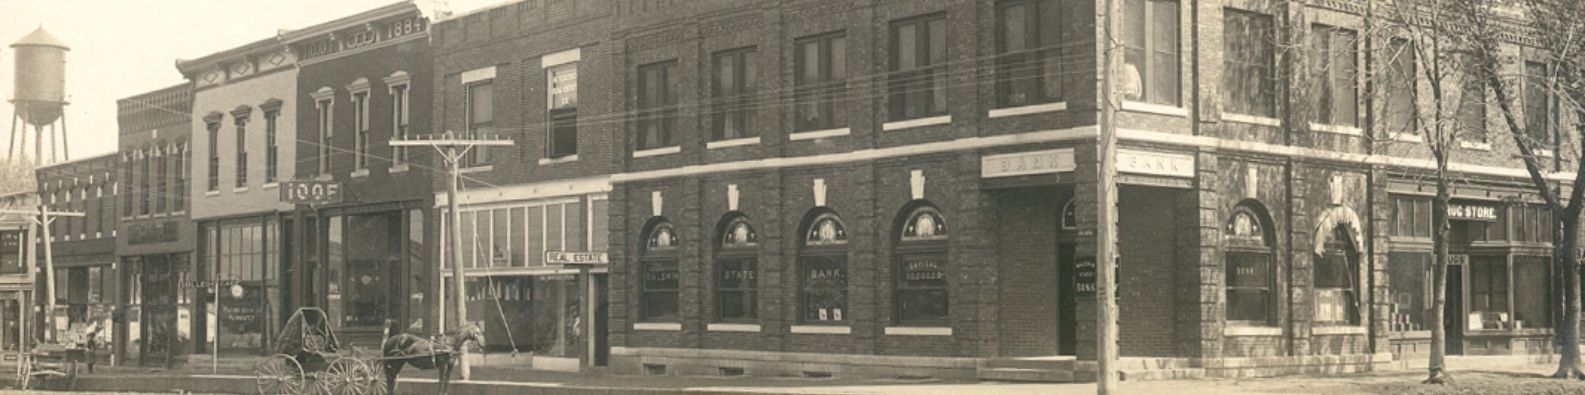 8th and High photo circa early 1900s